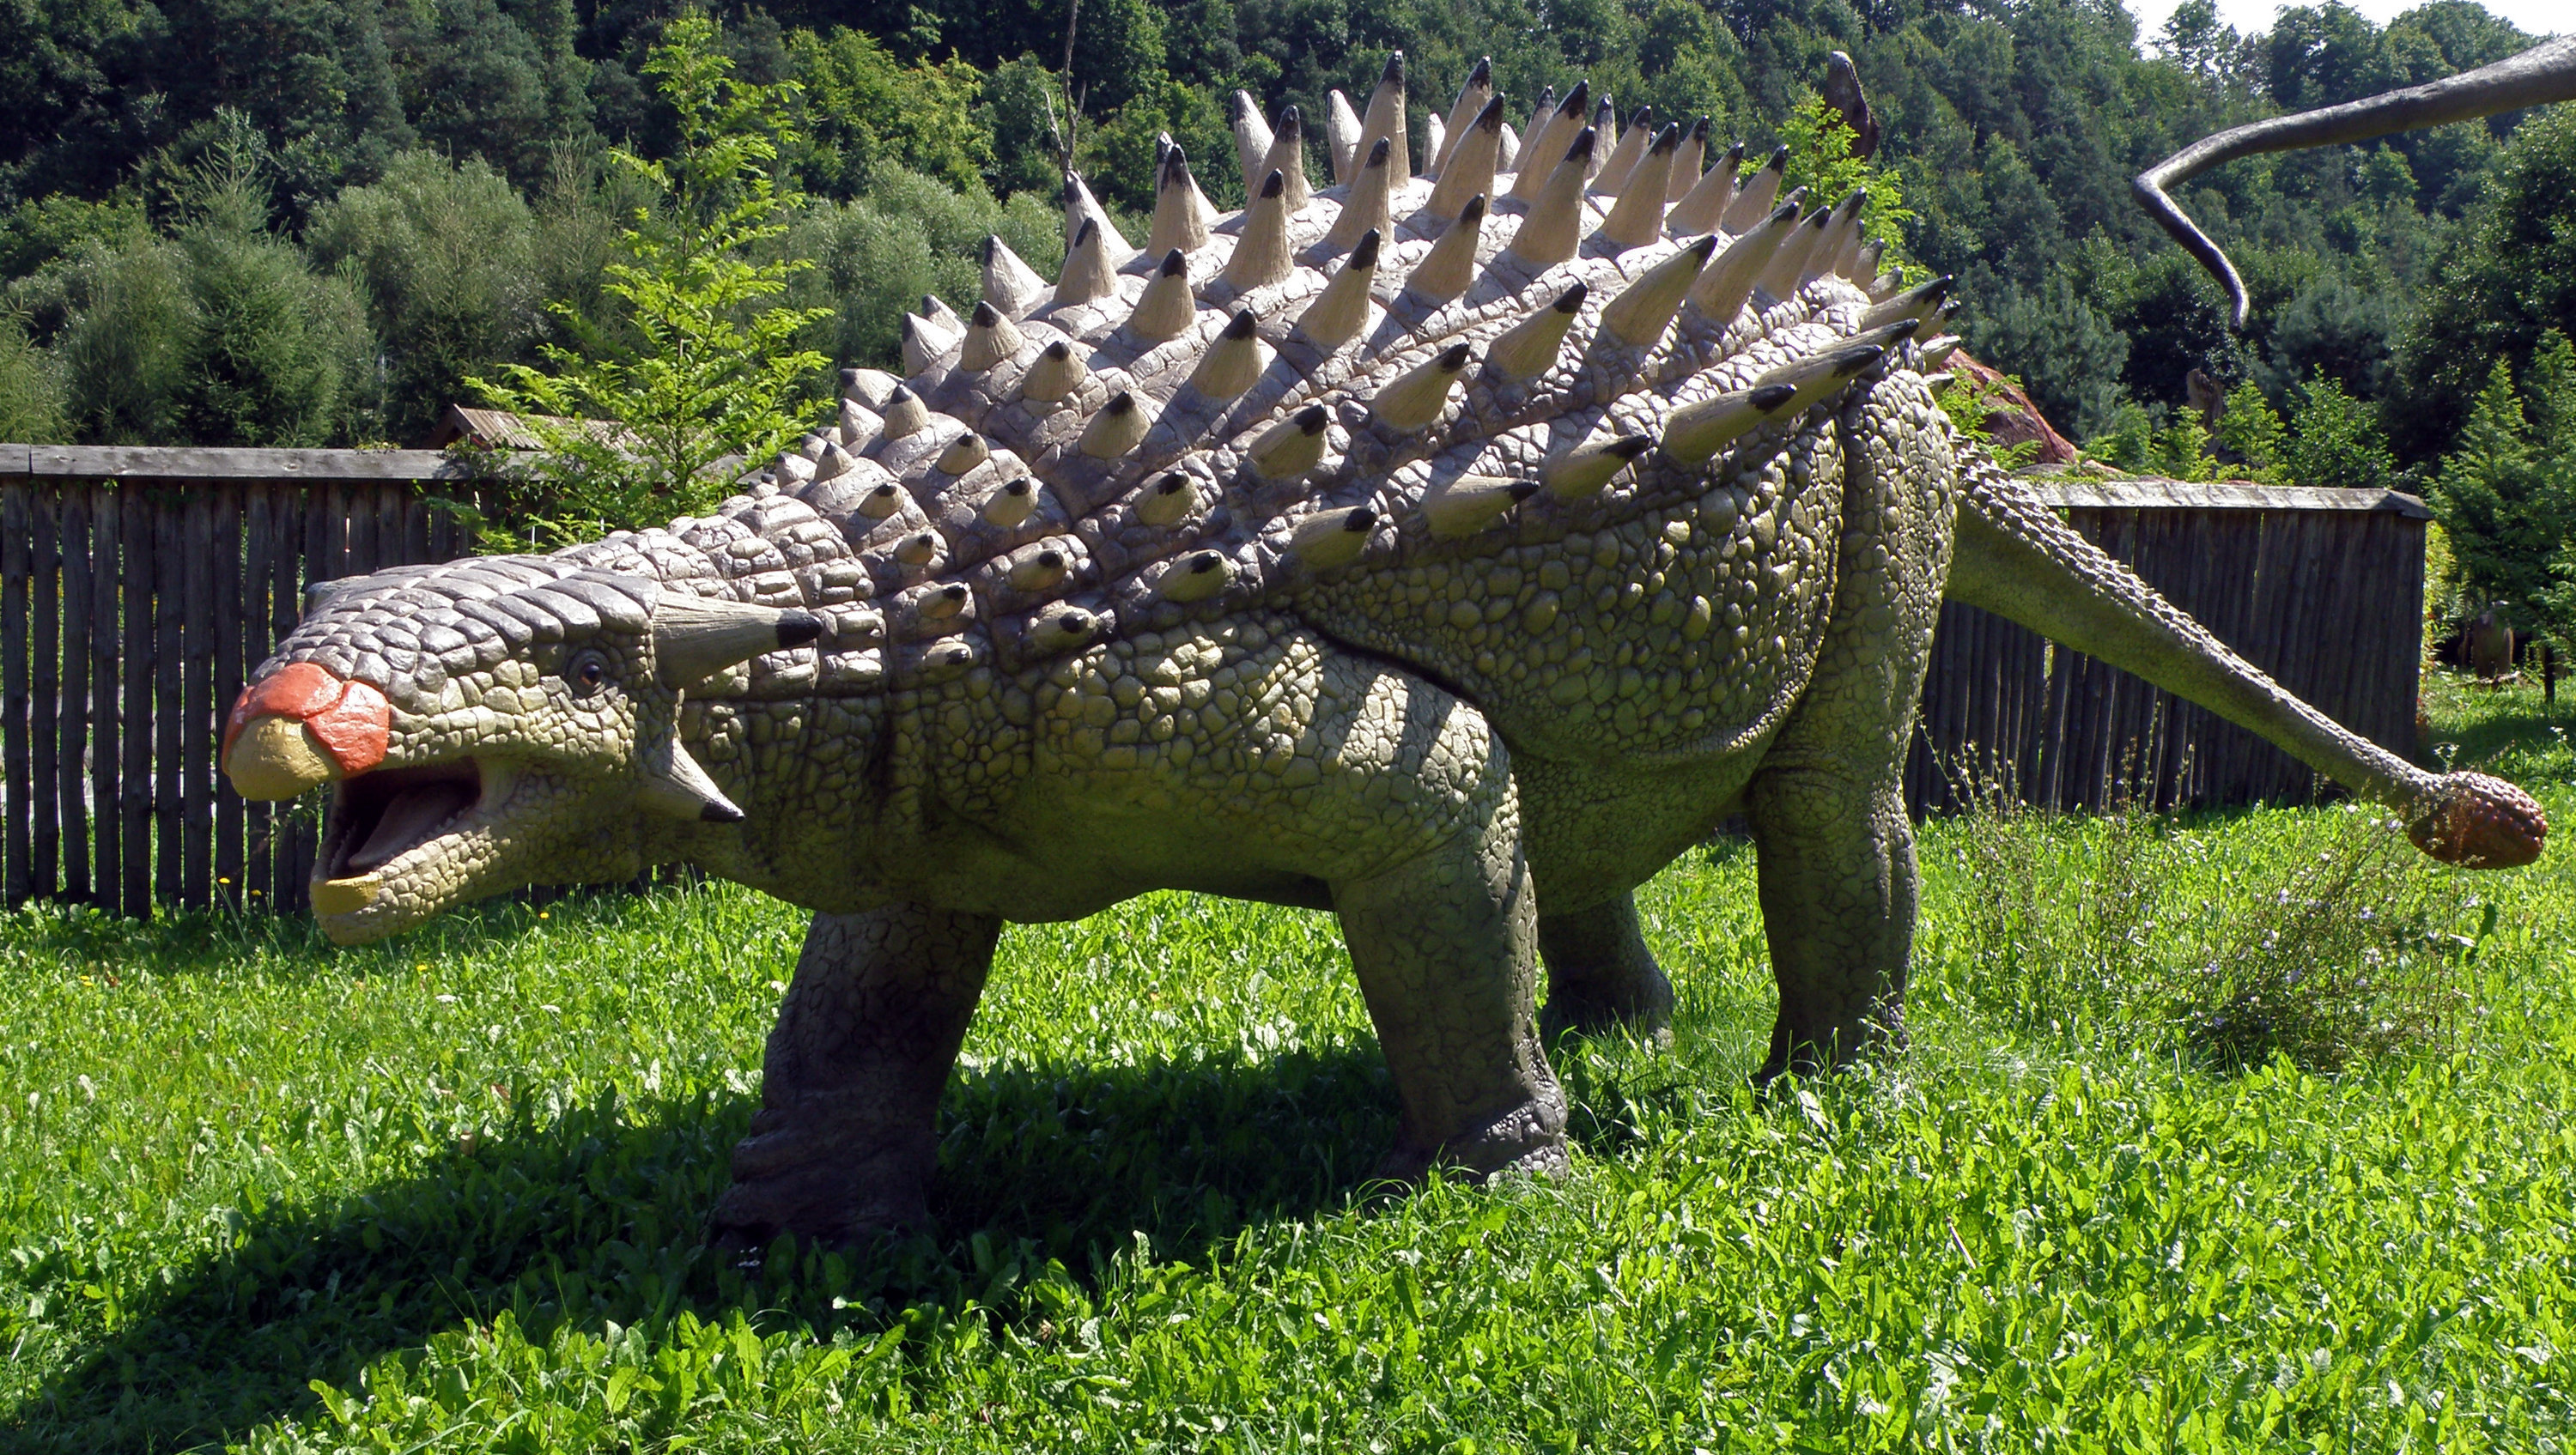 Ankylosaurus, a genus of a heavily armored dinosaur with a large club-like protrusion at the end of its tail. The nodosaur is an ancient cousin of the better-known ankylosaurus